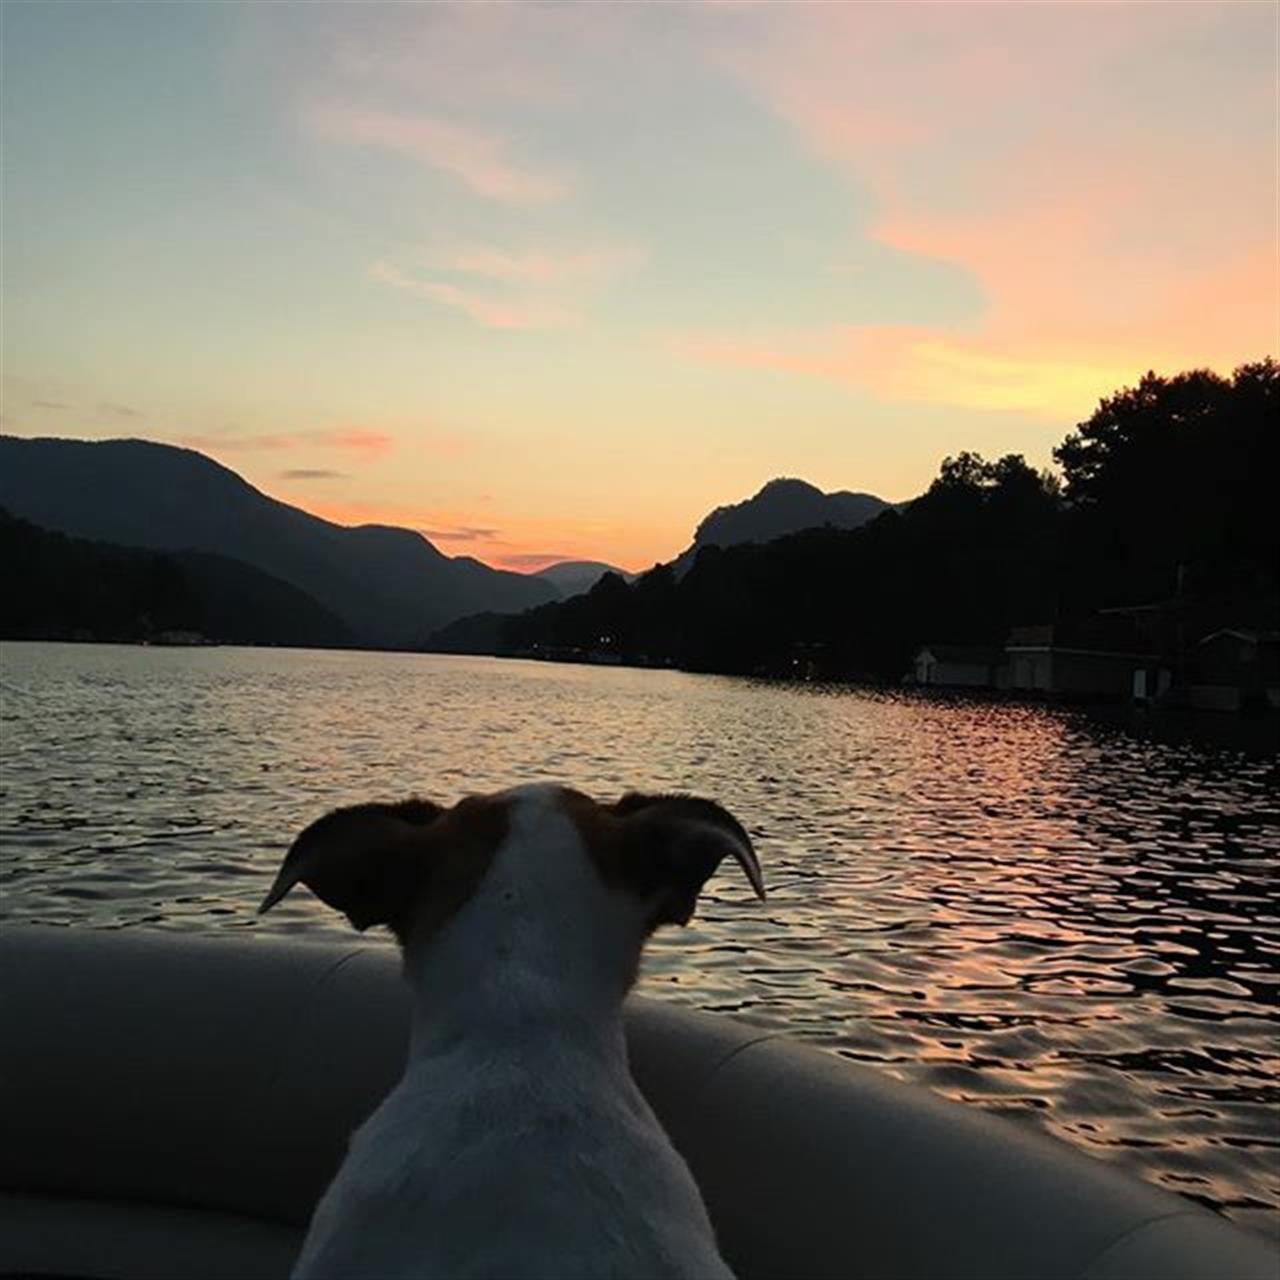 Sunset with Ding!!! #lakelure #lovewherewelive #shling #leadingrelocal